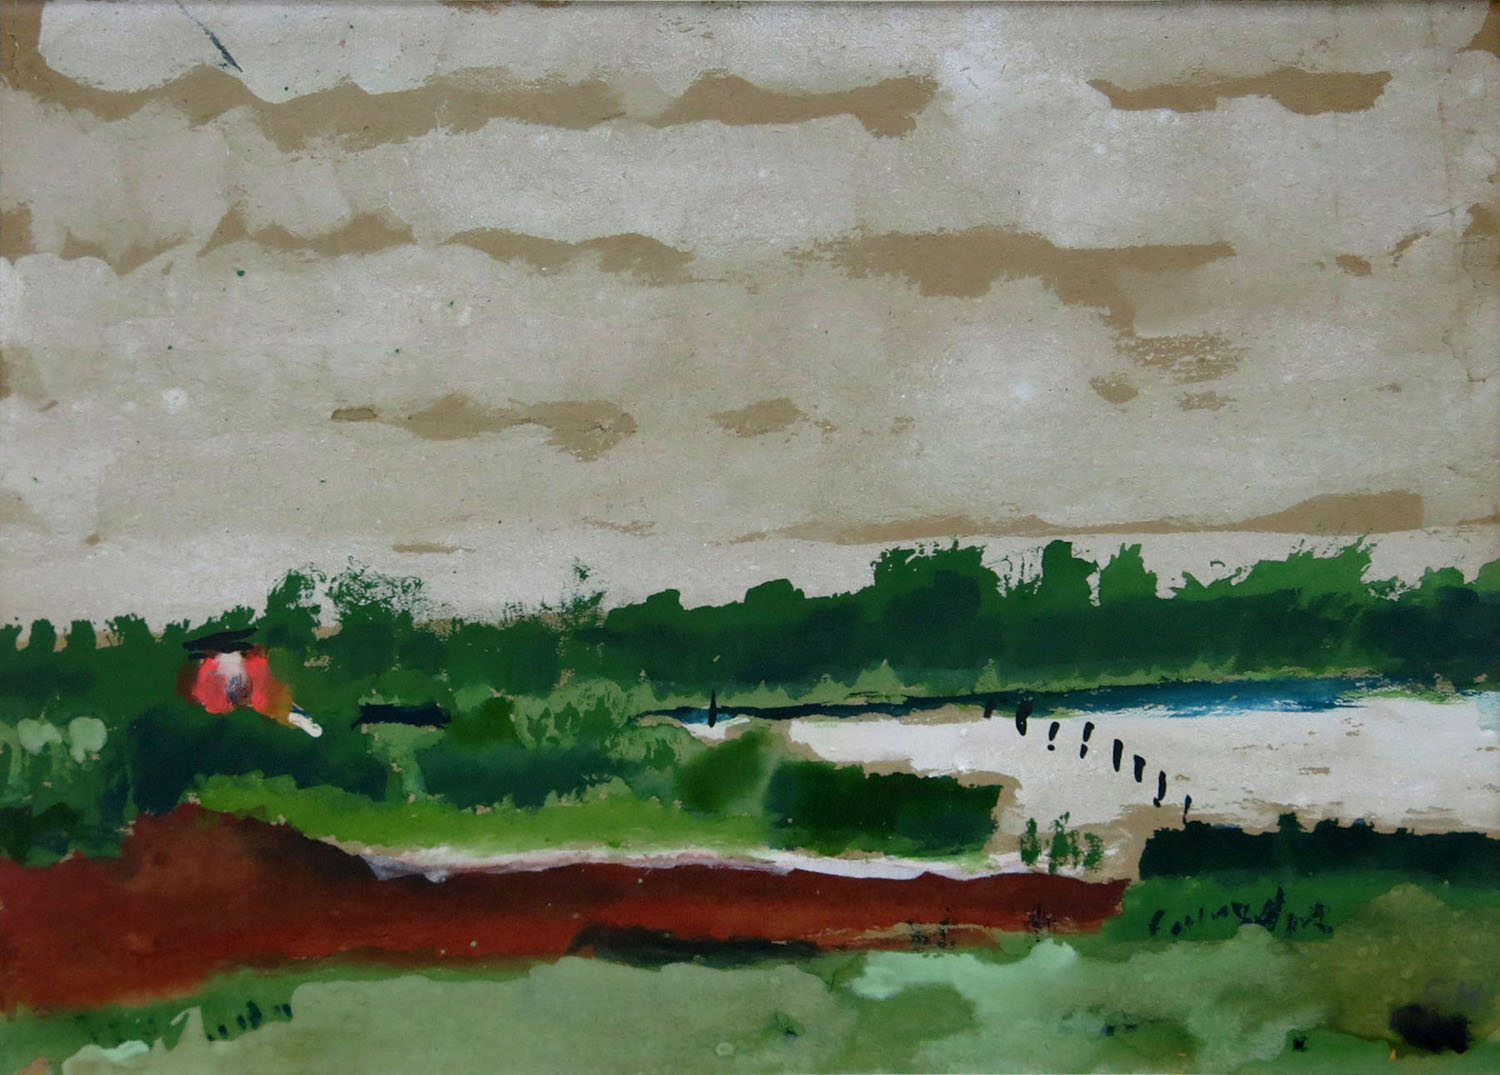 Charles W. Hutson,  Weather Coming In ,  c. 1930, watercolor on paper, 8.5h x 11.5w in.